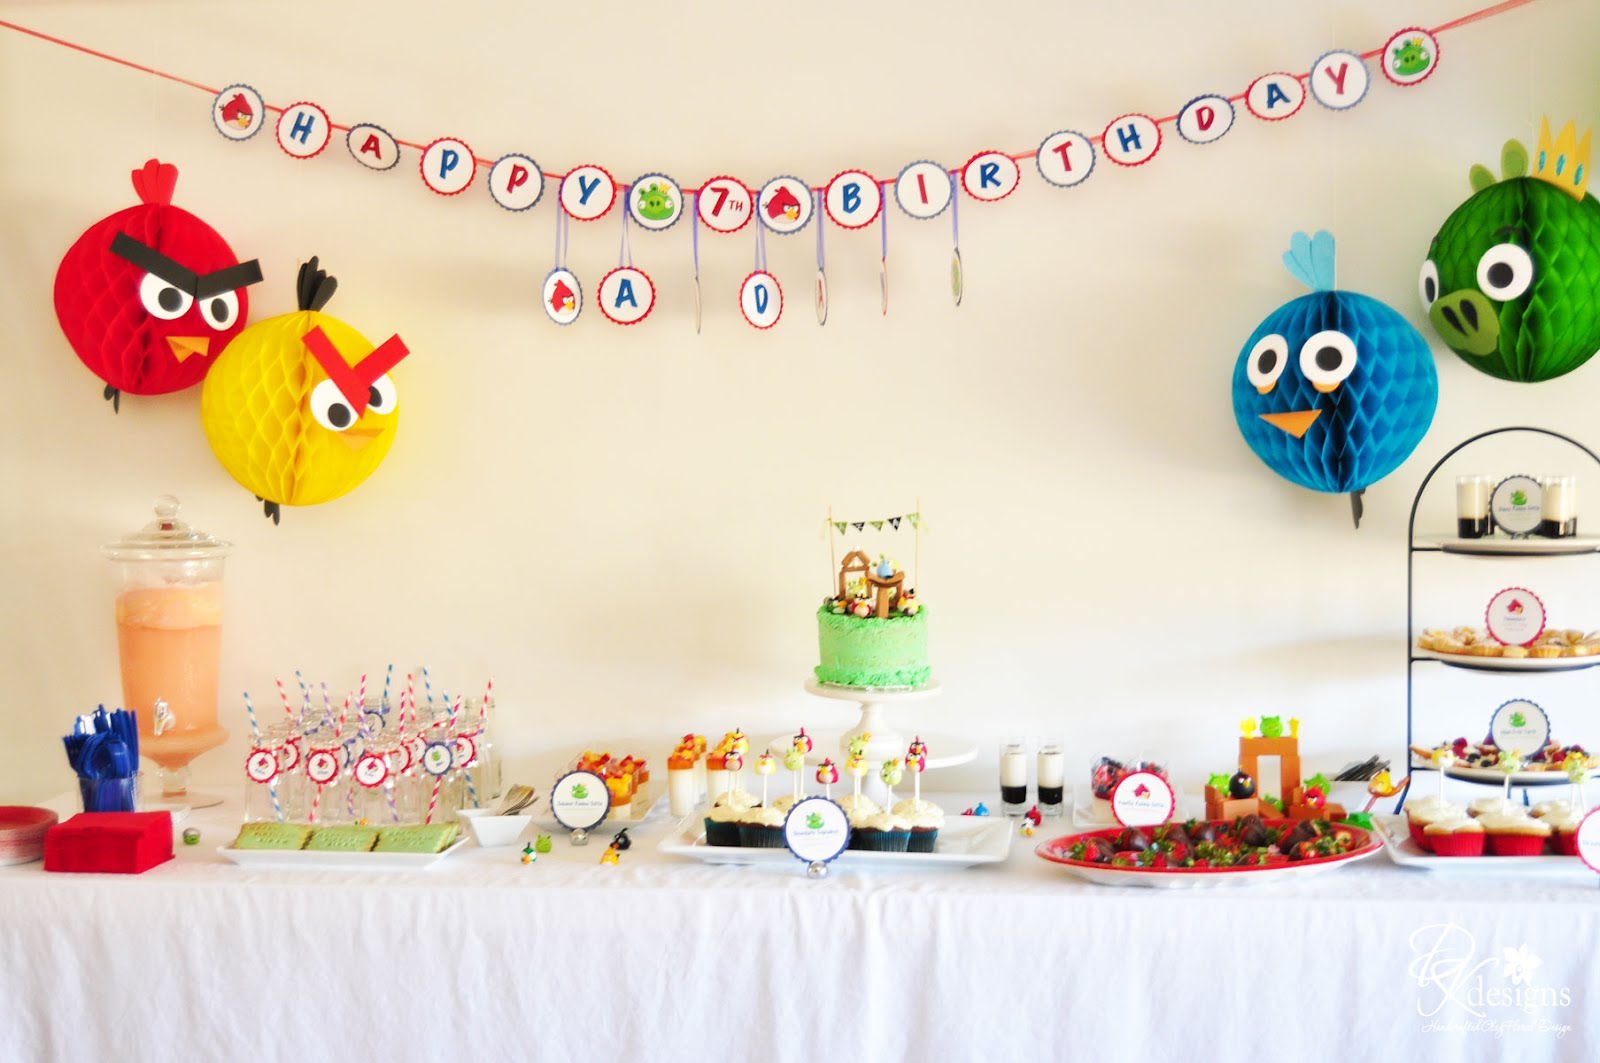 angry bird theme party ideas, Angry bird theme favours, Angry bird theme games